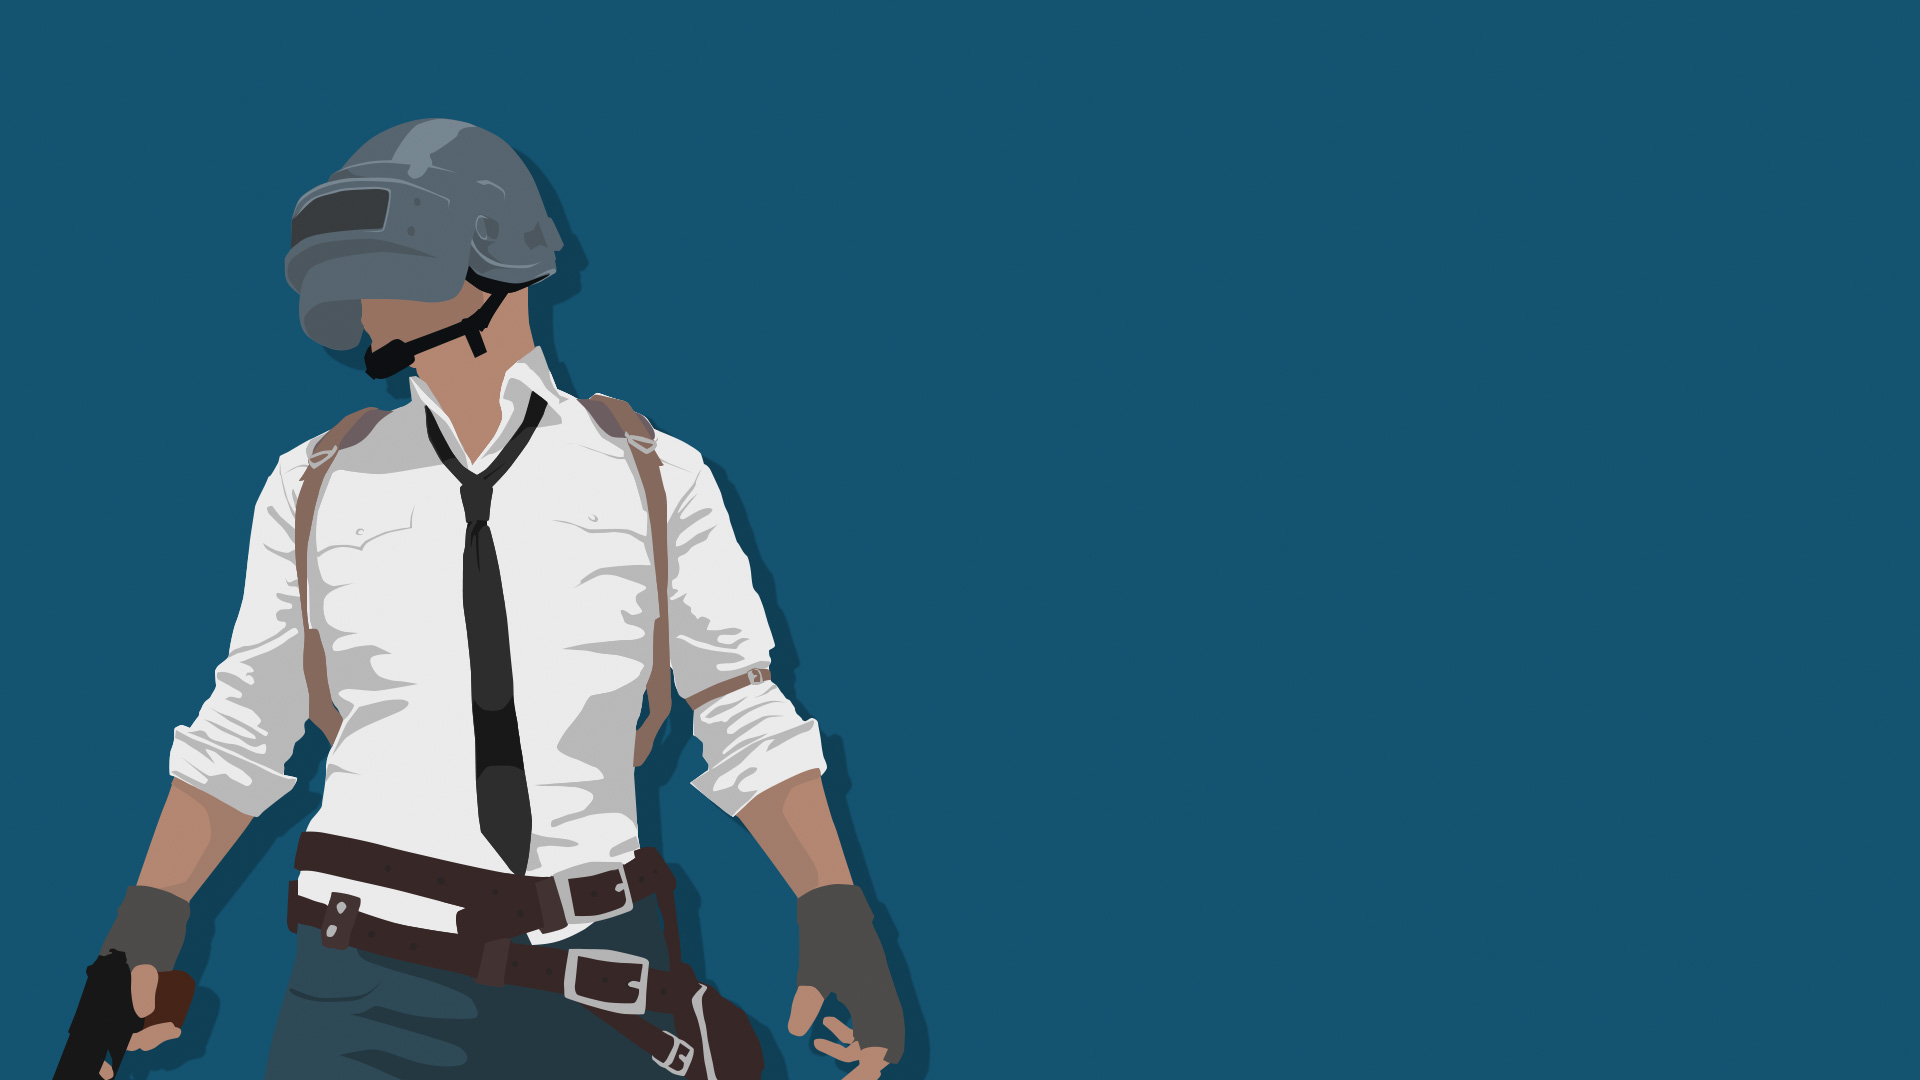 Playerunknowns Battlegrounds Minimalism, HD Games, 4k